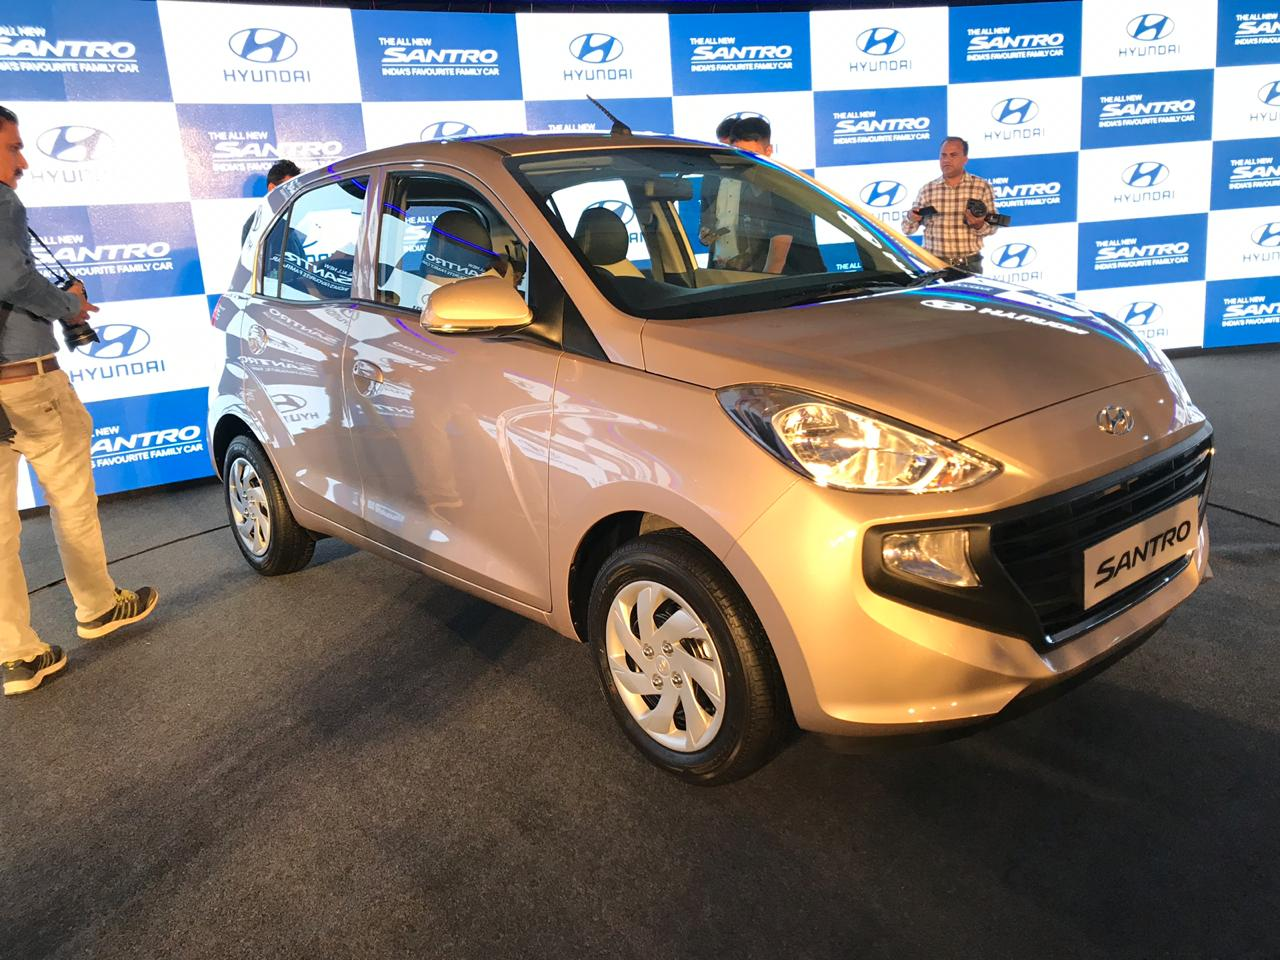 live updates: 2018 hyundai santro india launch - overdrive